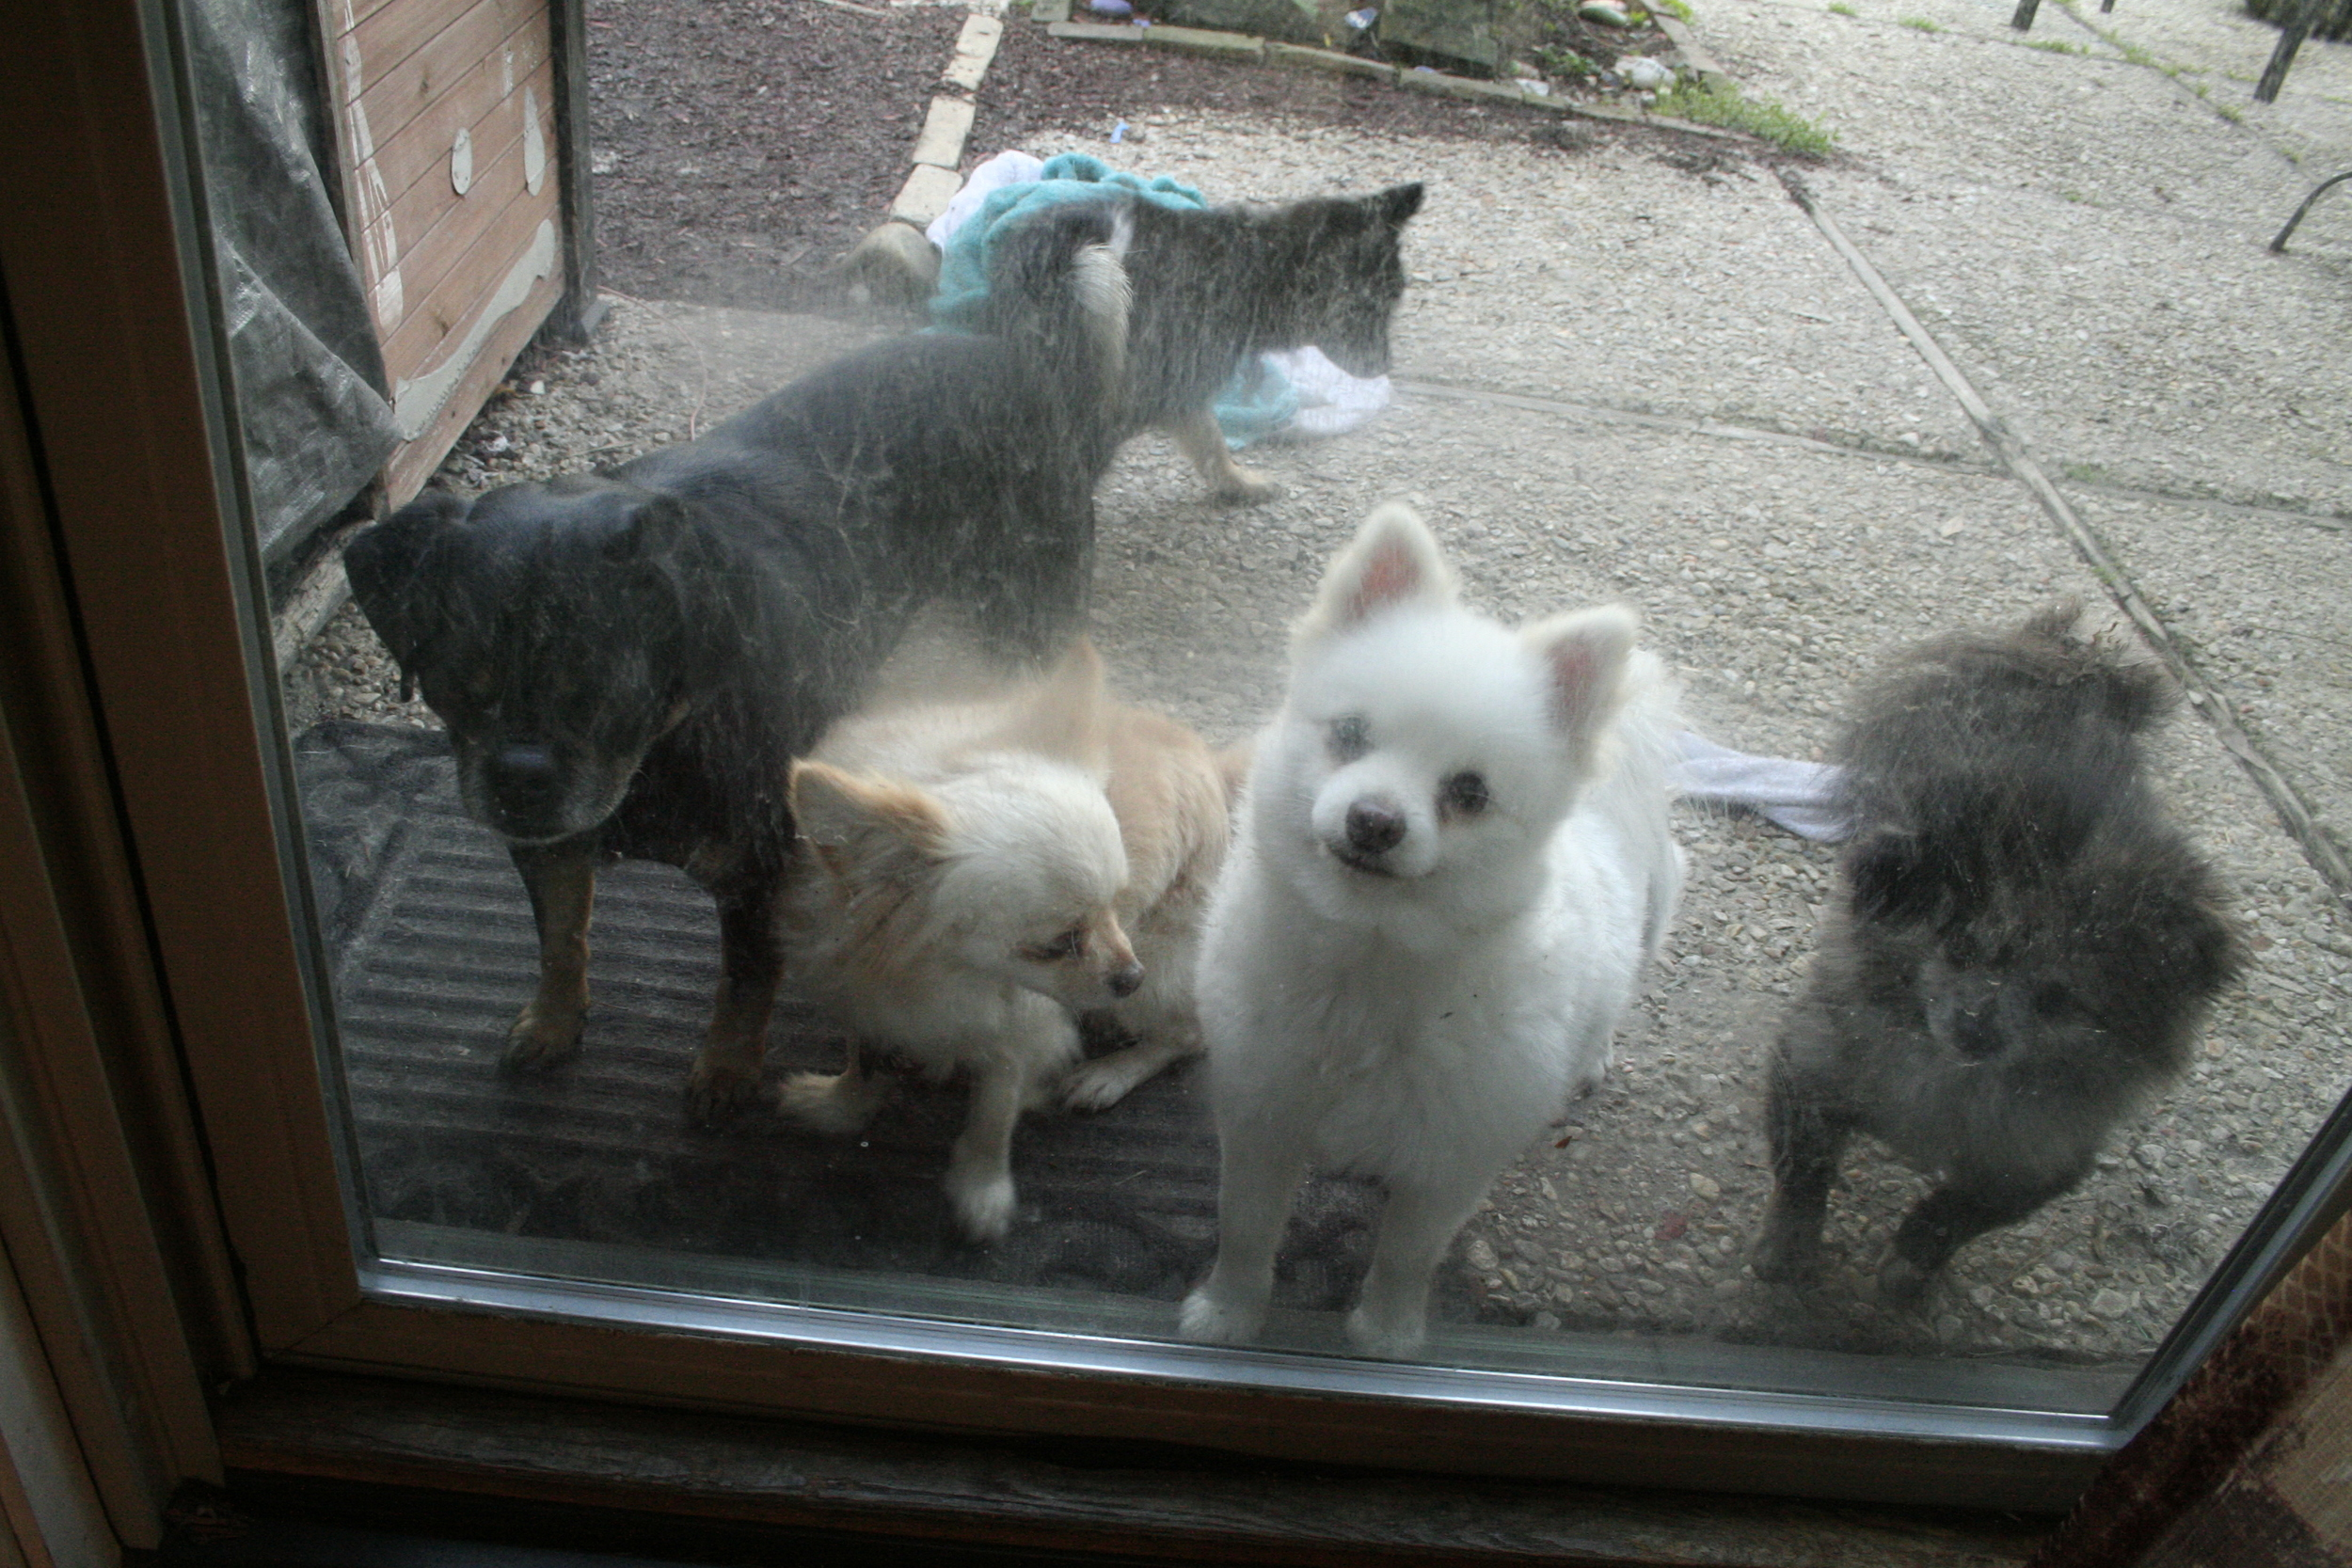 more of bigby's dog family. his dad is on the left, and the white pomeranian is his mom.